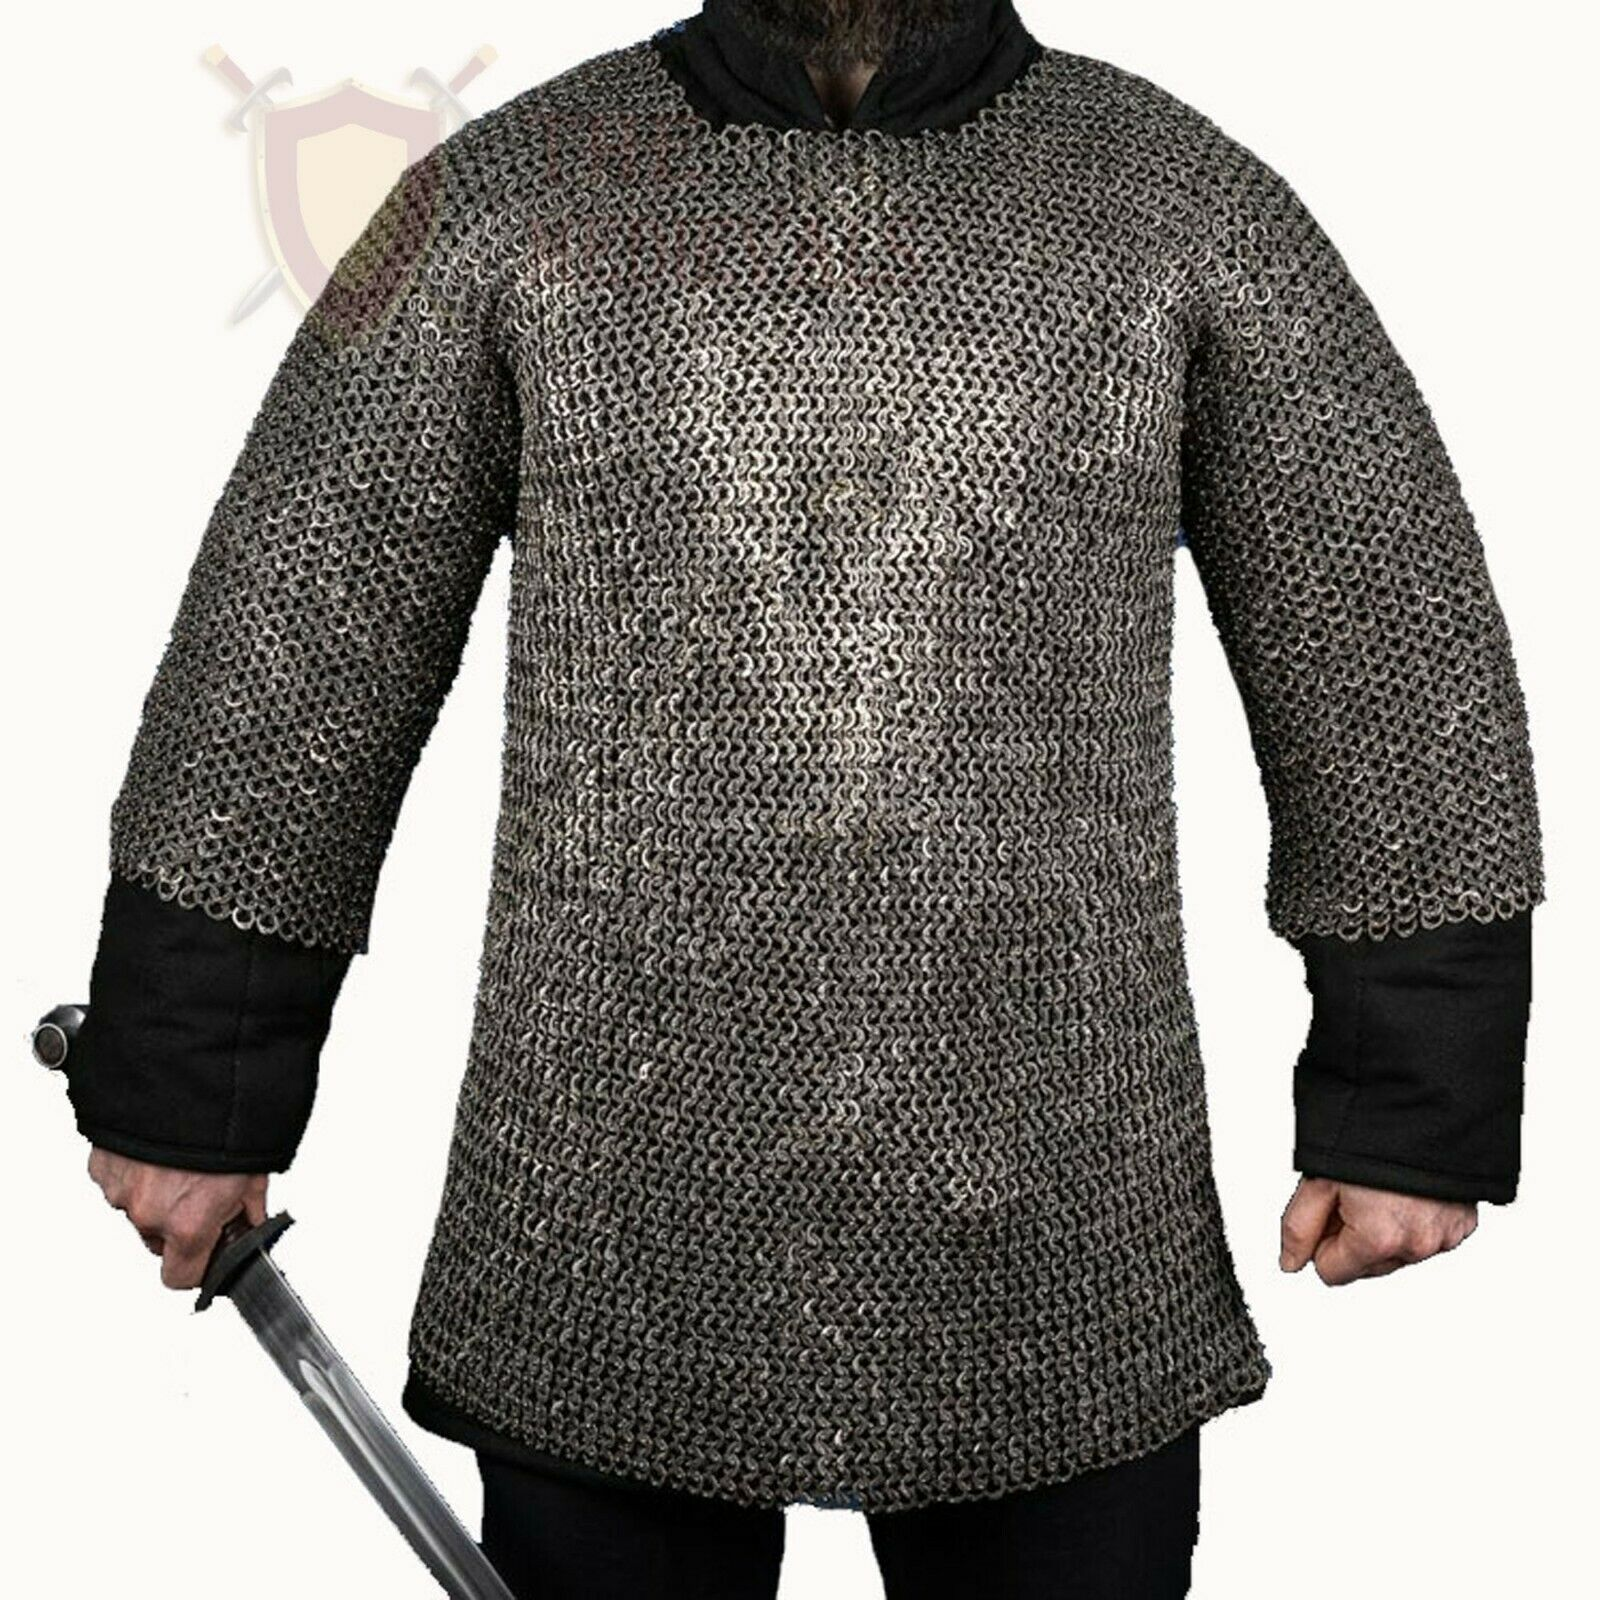 THE MEDIEVALS 09 MM ID MS Flat Riveted Haubergoen Chain Mail Shirt Armor SCA